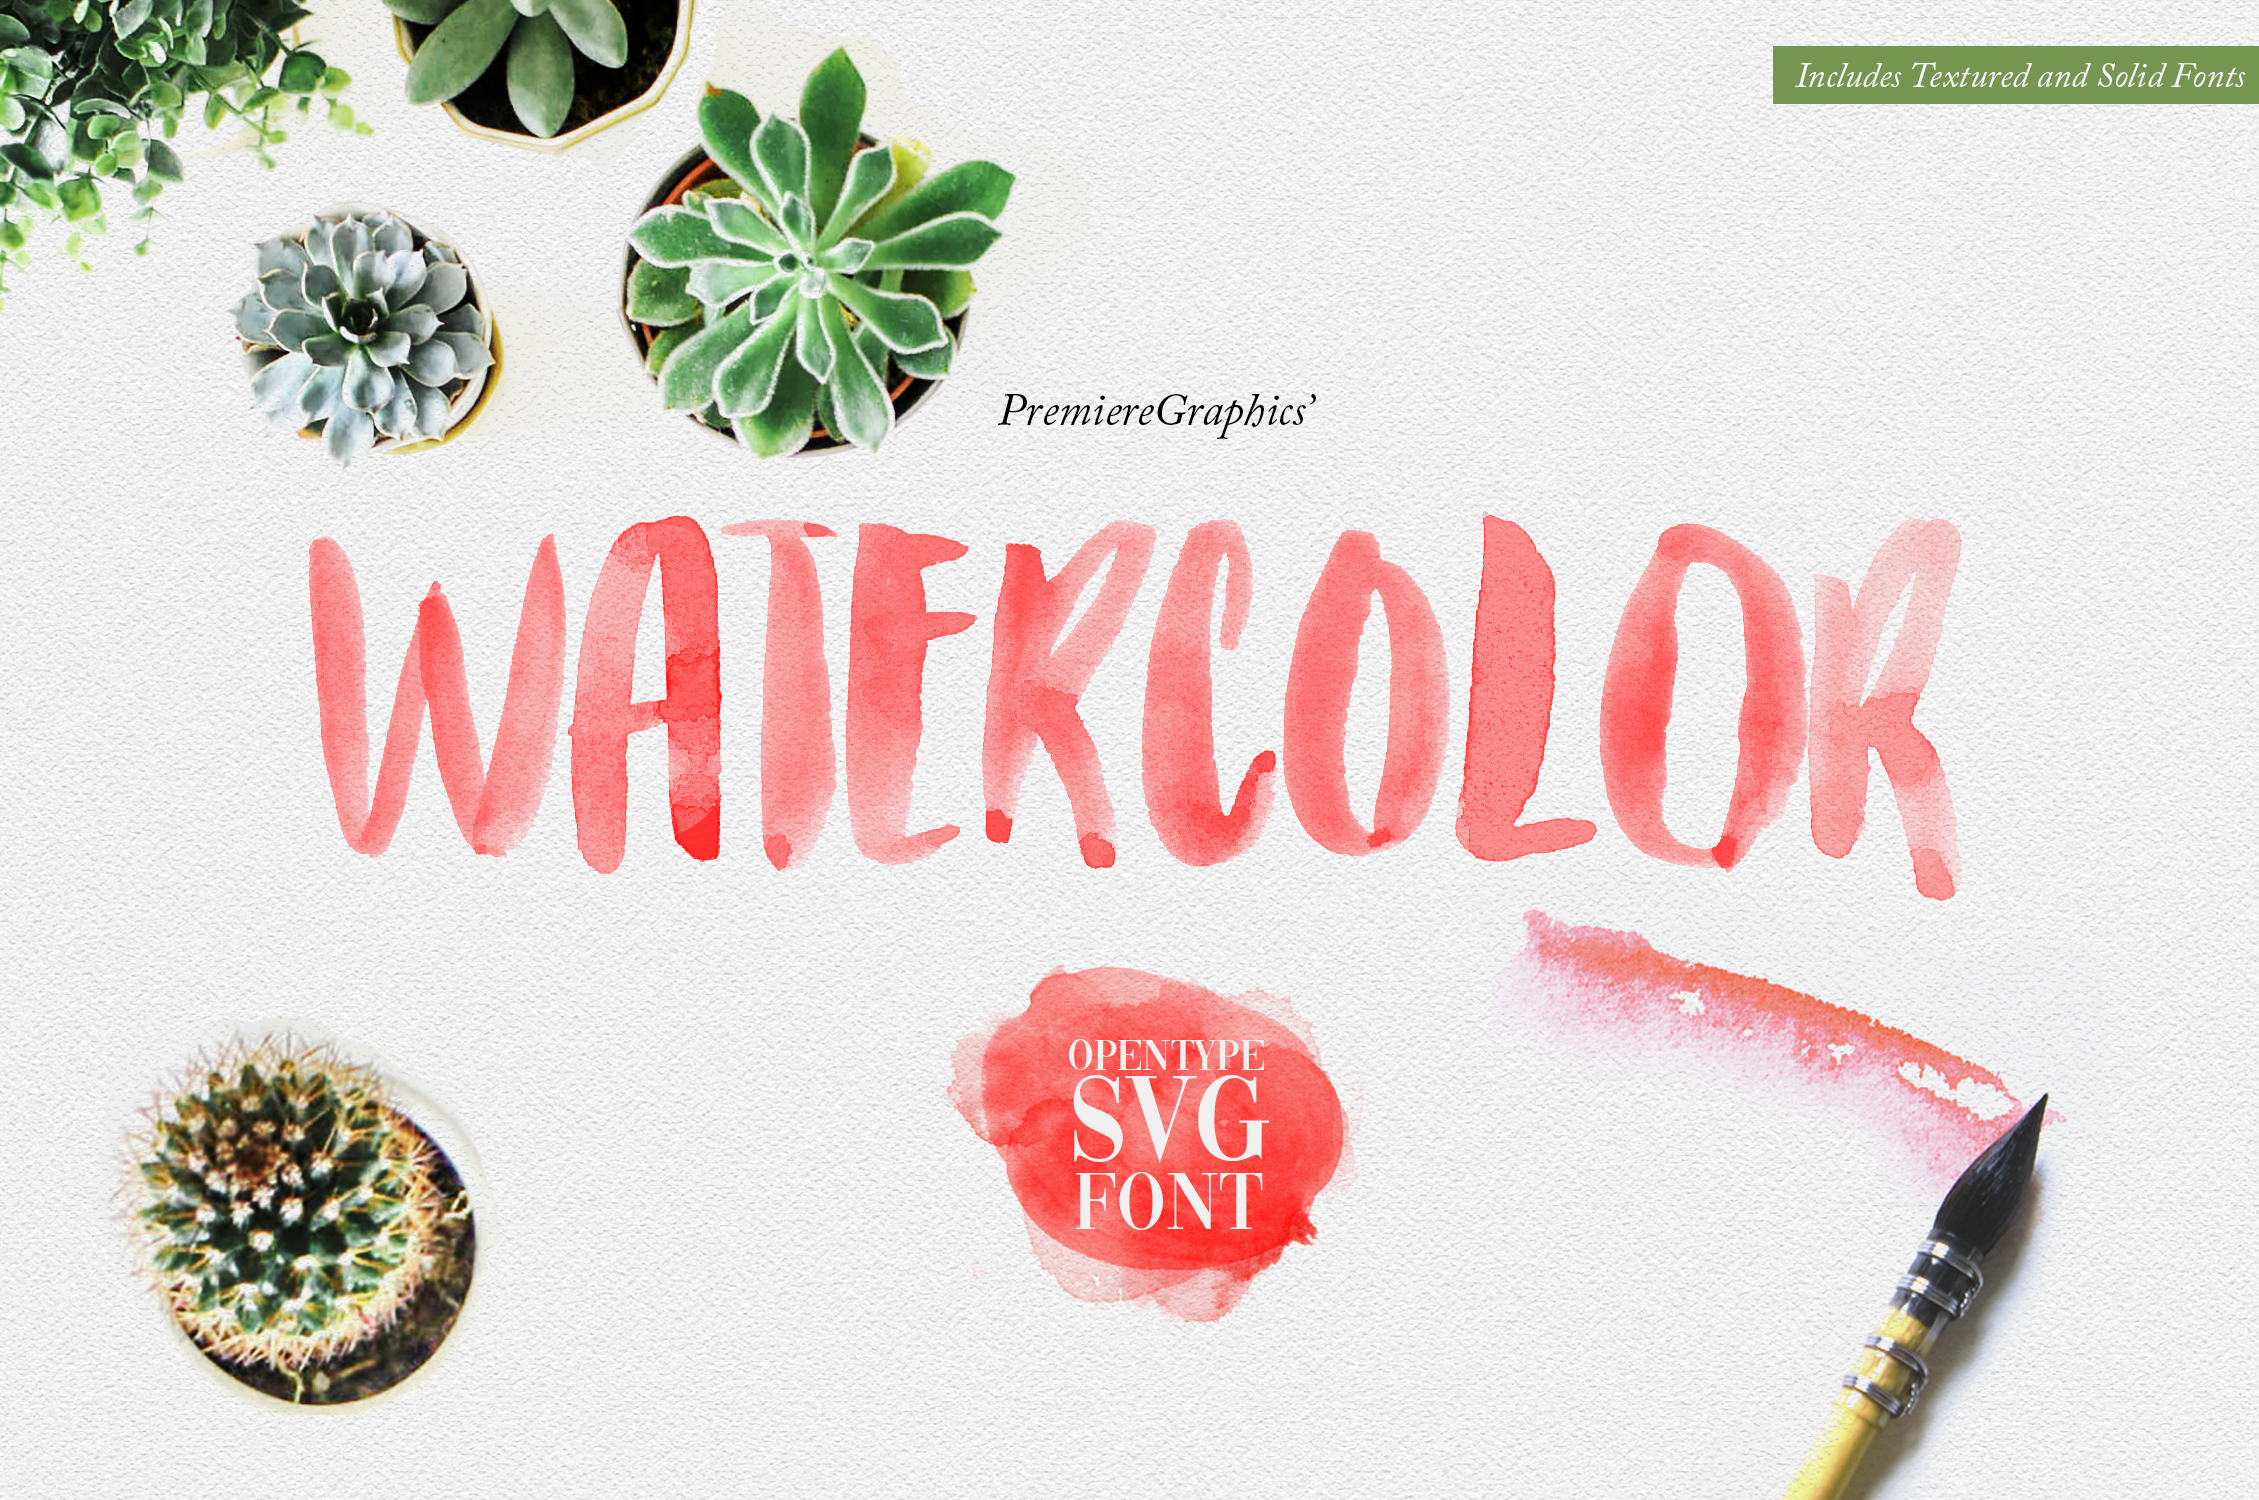 Watercolor Opentype-SVG Font example image 1